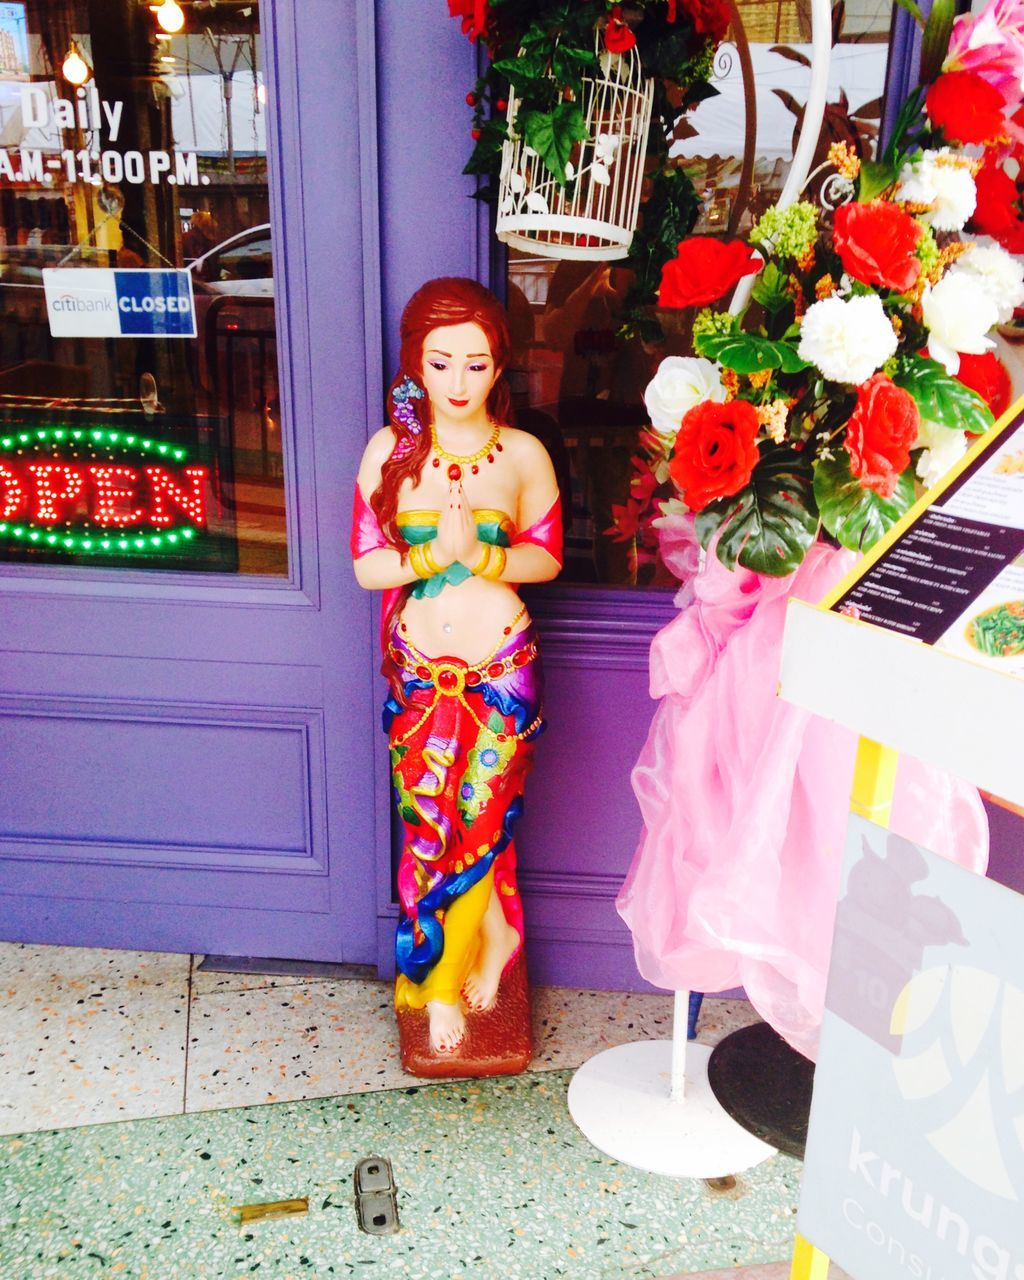 retail, for sale, store, arrangement, flower, real people, statue, outdoors, standing, full length, day, architecture